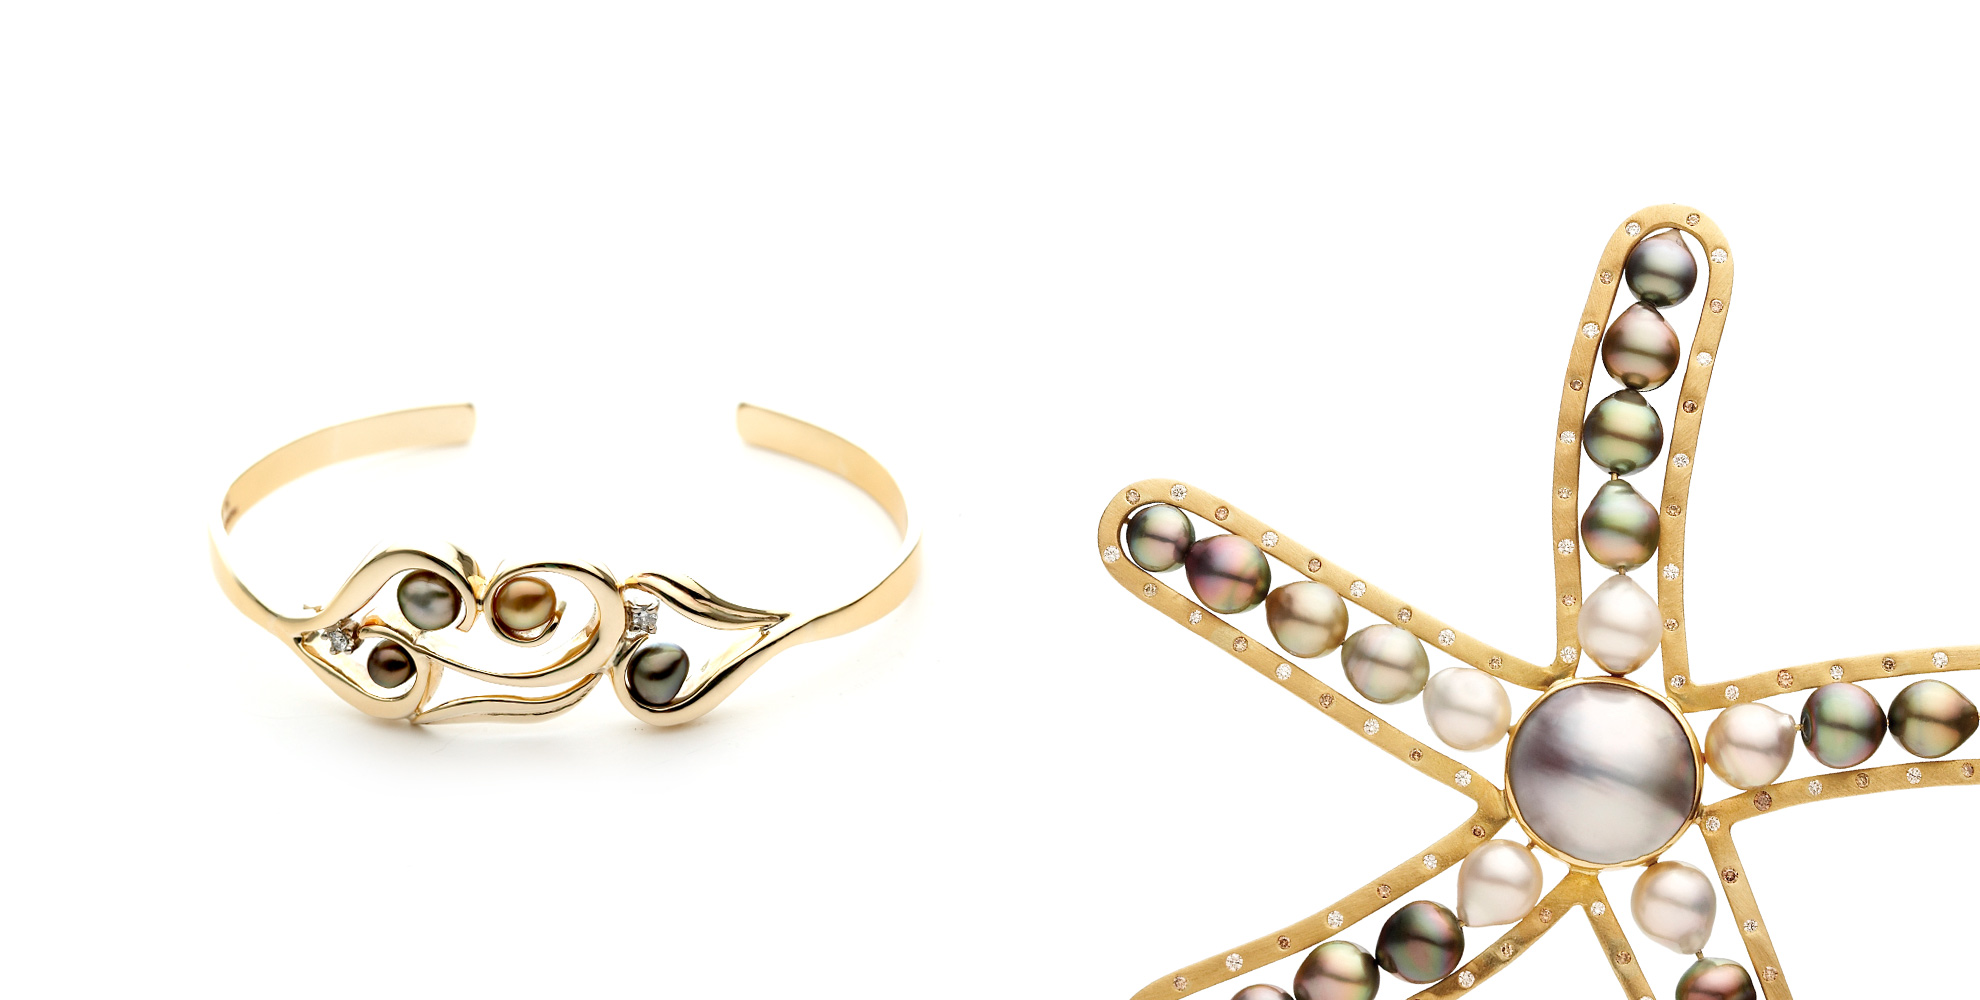 Gold and Pearl Jewellery